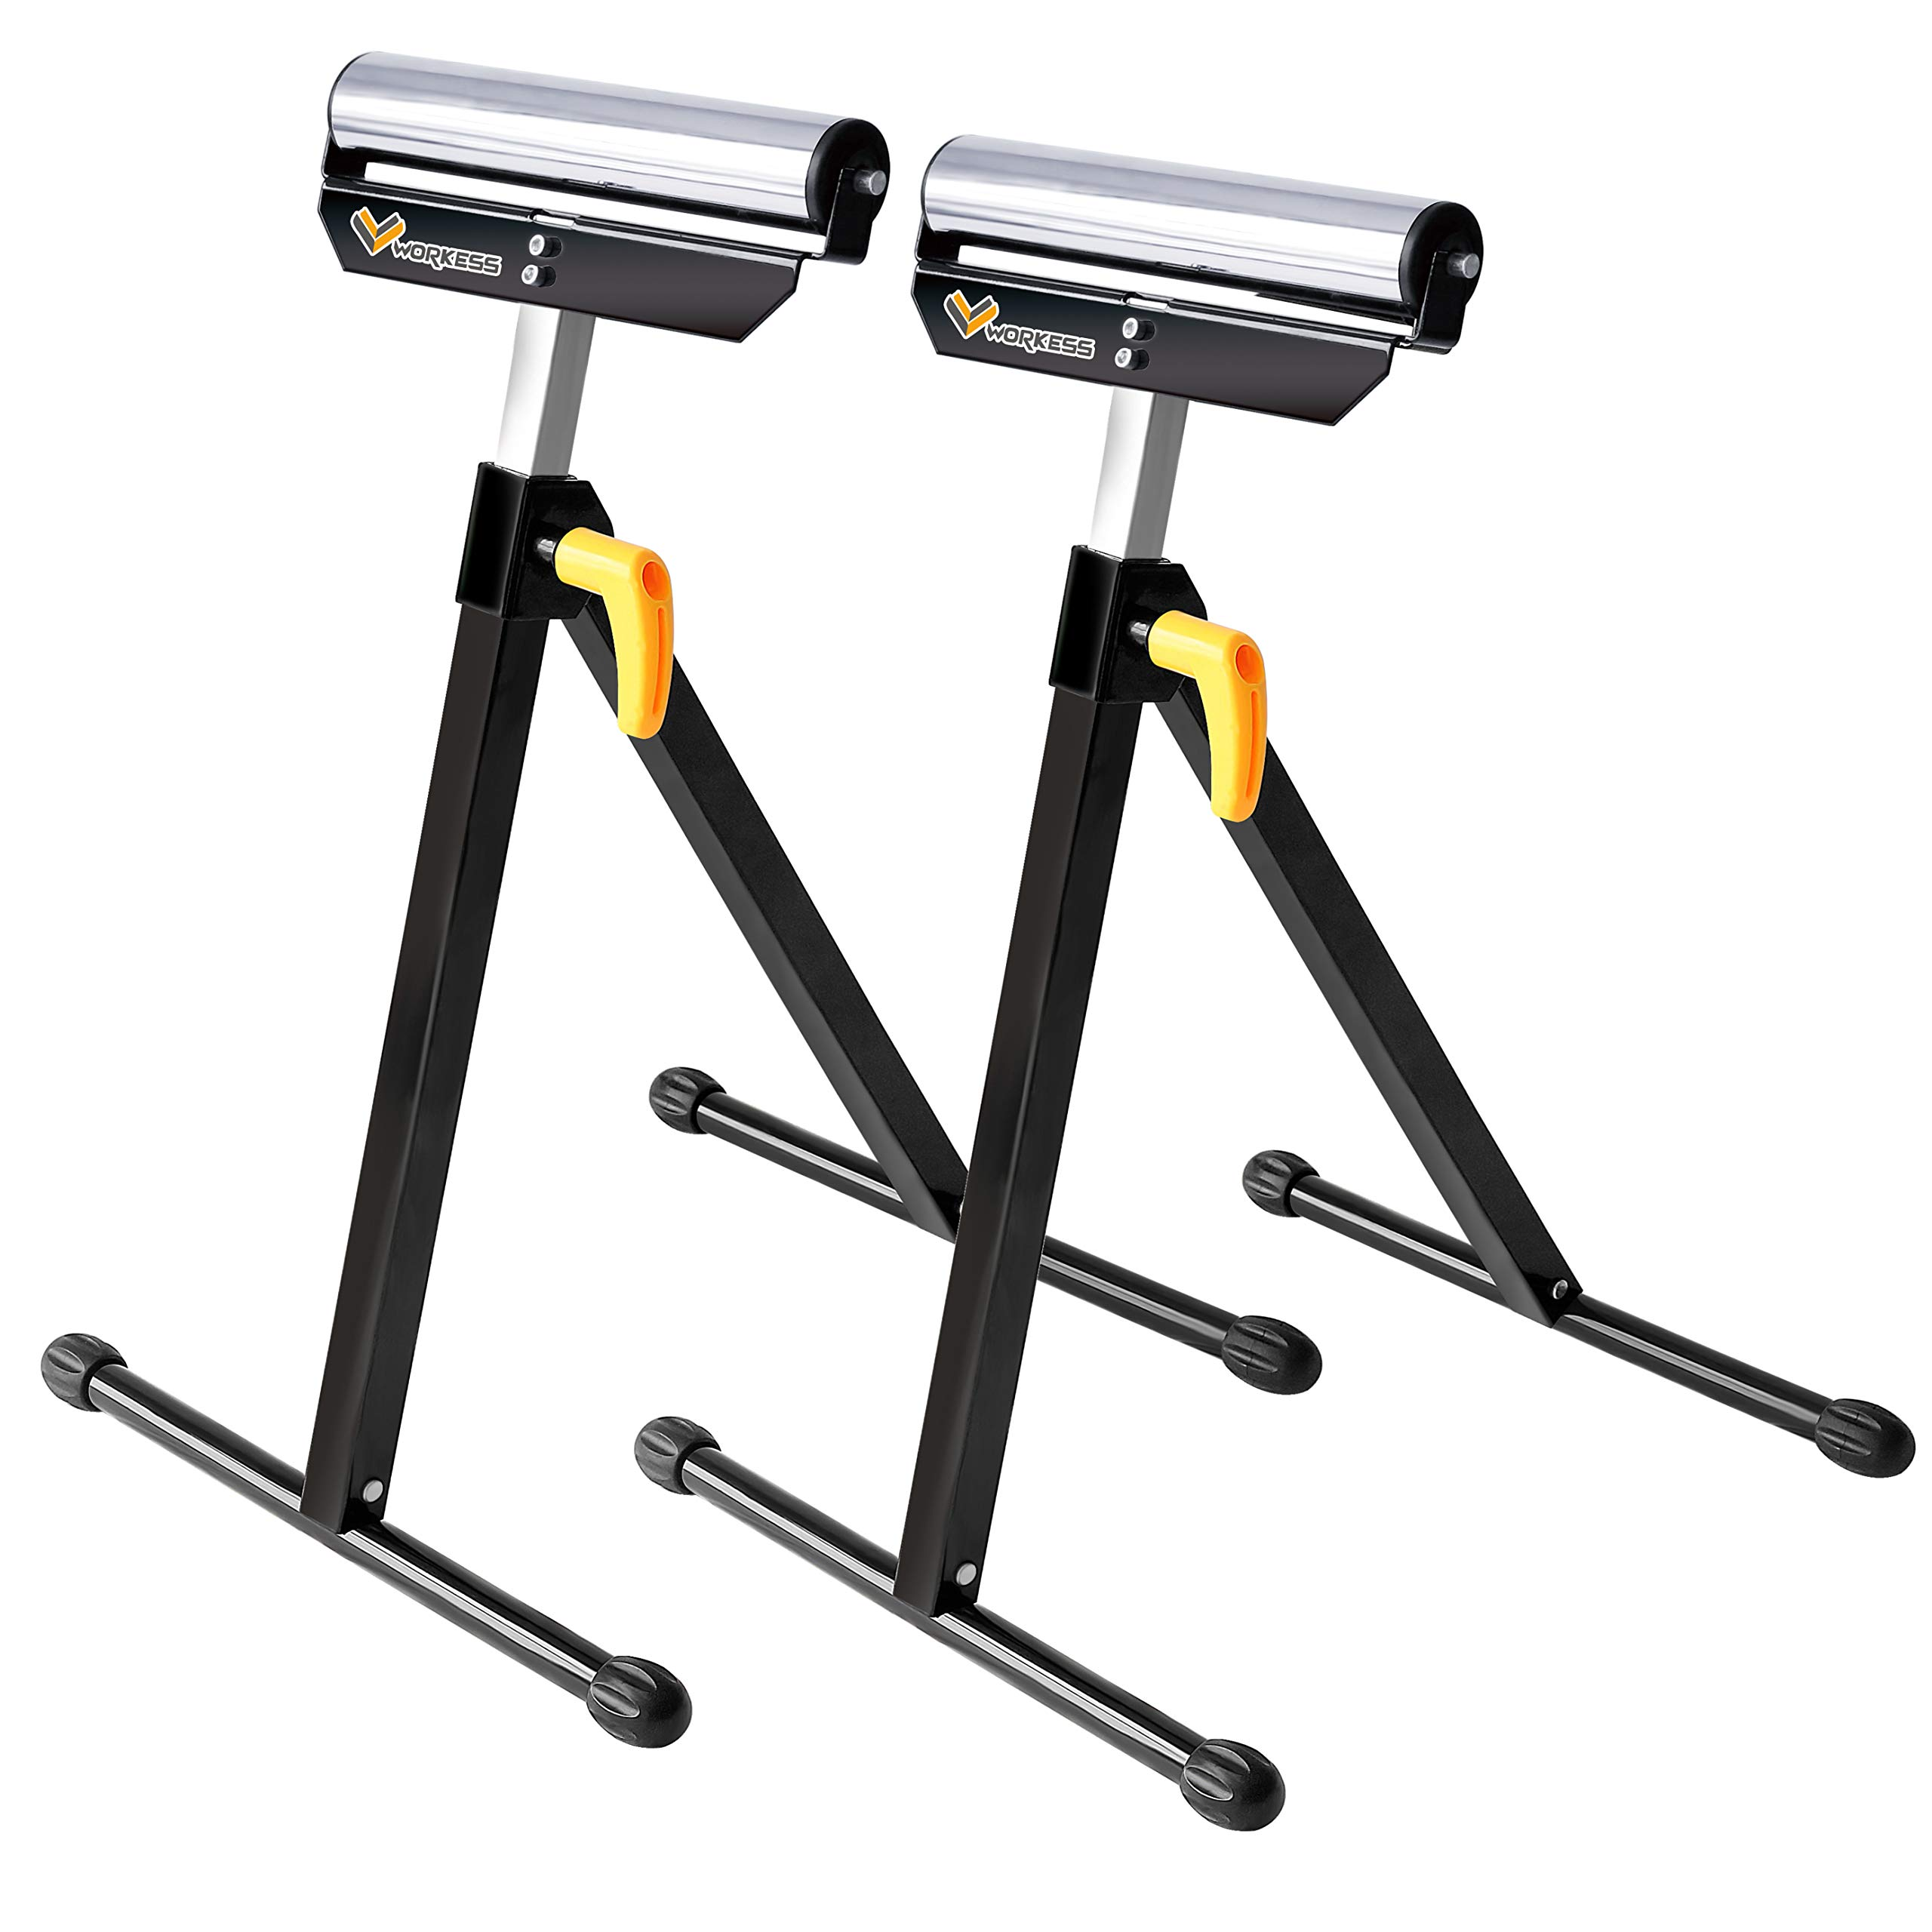 Single Roller Support Stand 132 Lbs Load Capacity, Twin Pack WK-RS004T by WORKESS